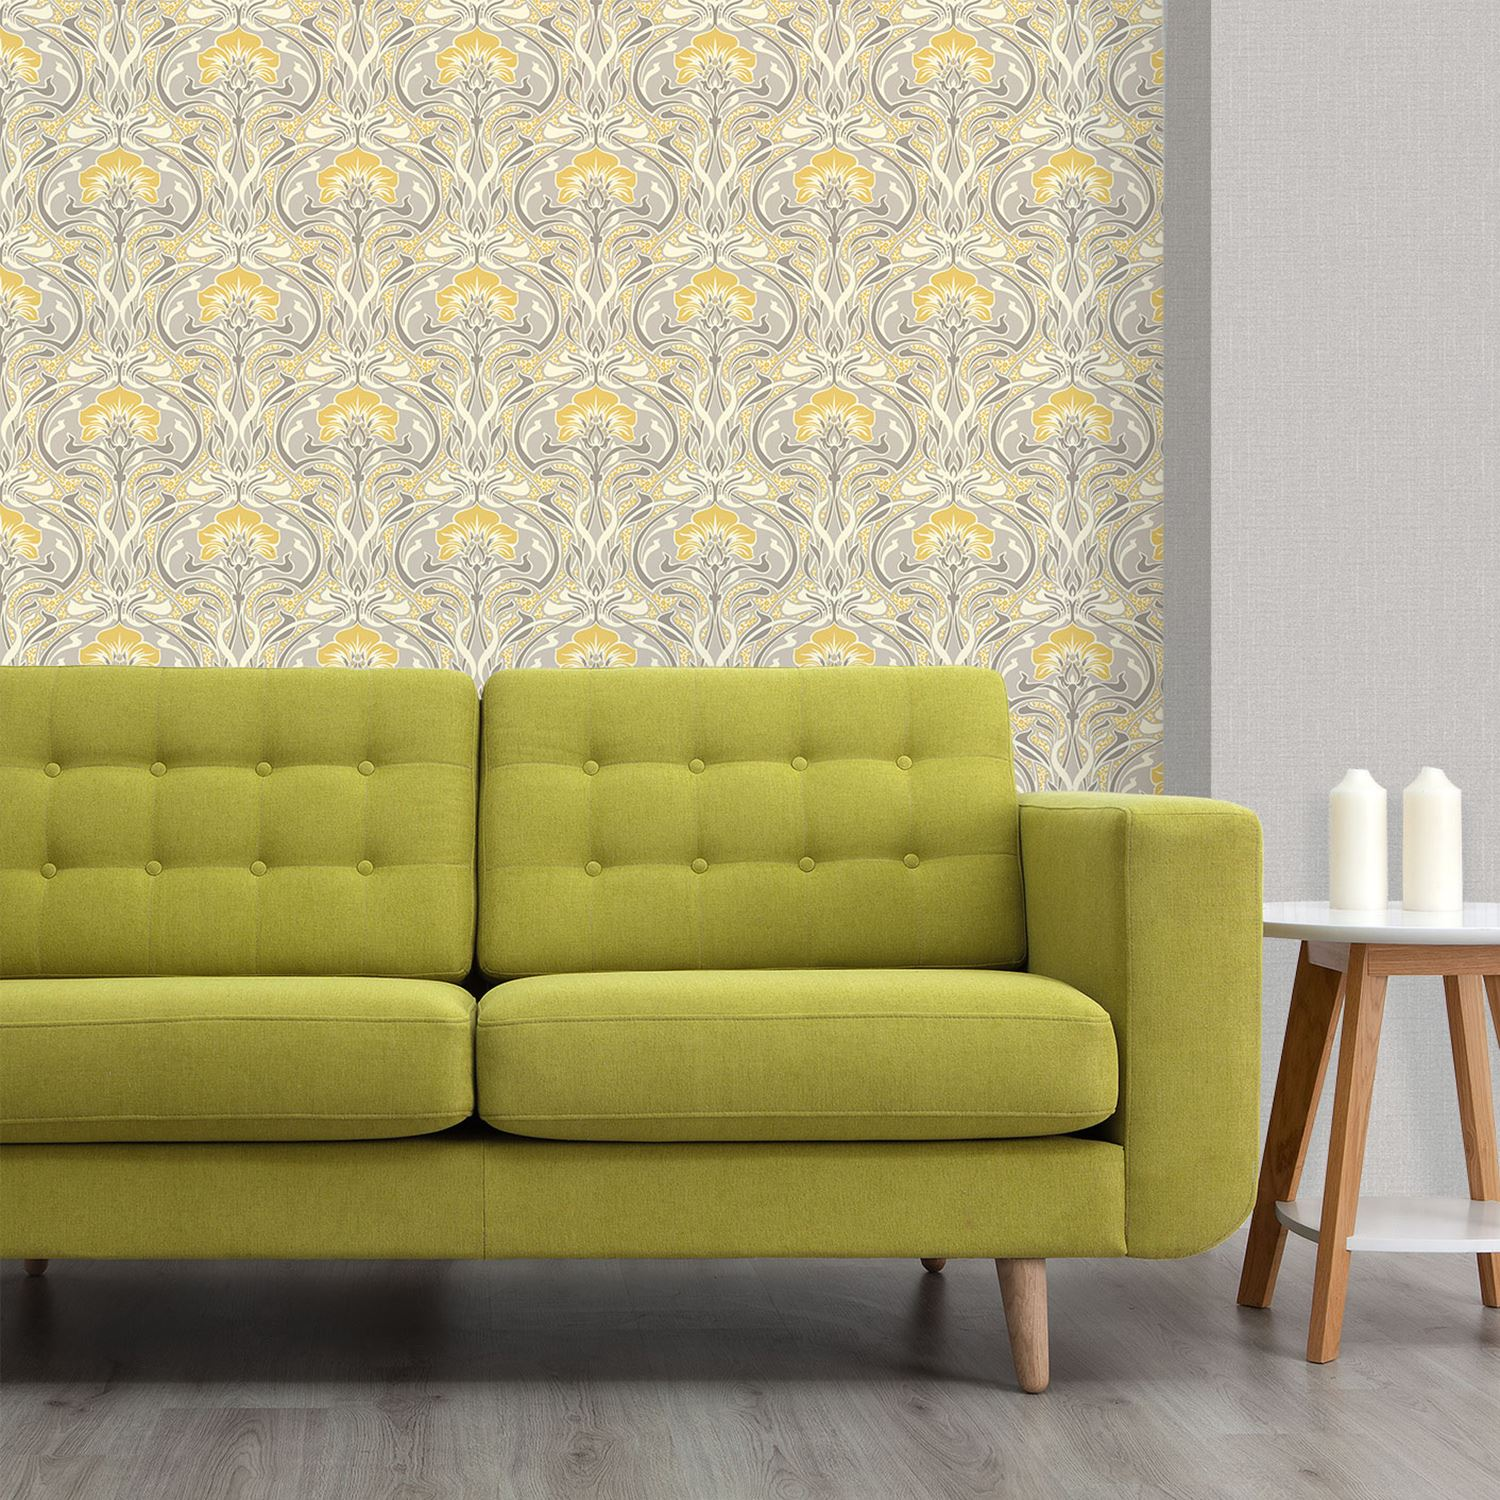 CROWN ARCHIVES FLORA NOUVEAU WALLPAPER GREEN, YELLOW & NATURAL WALL ...